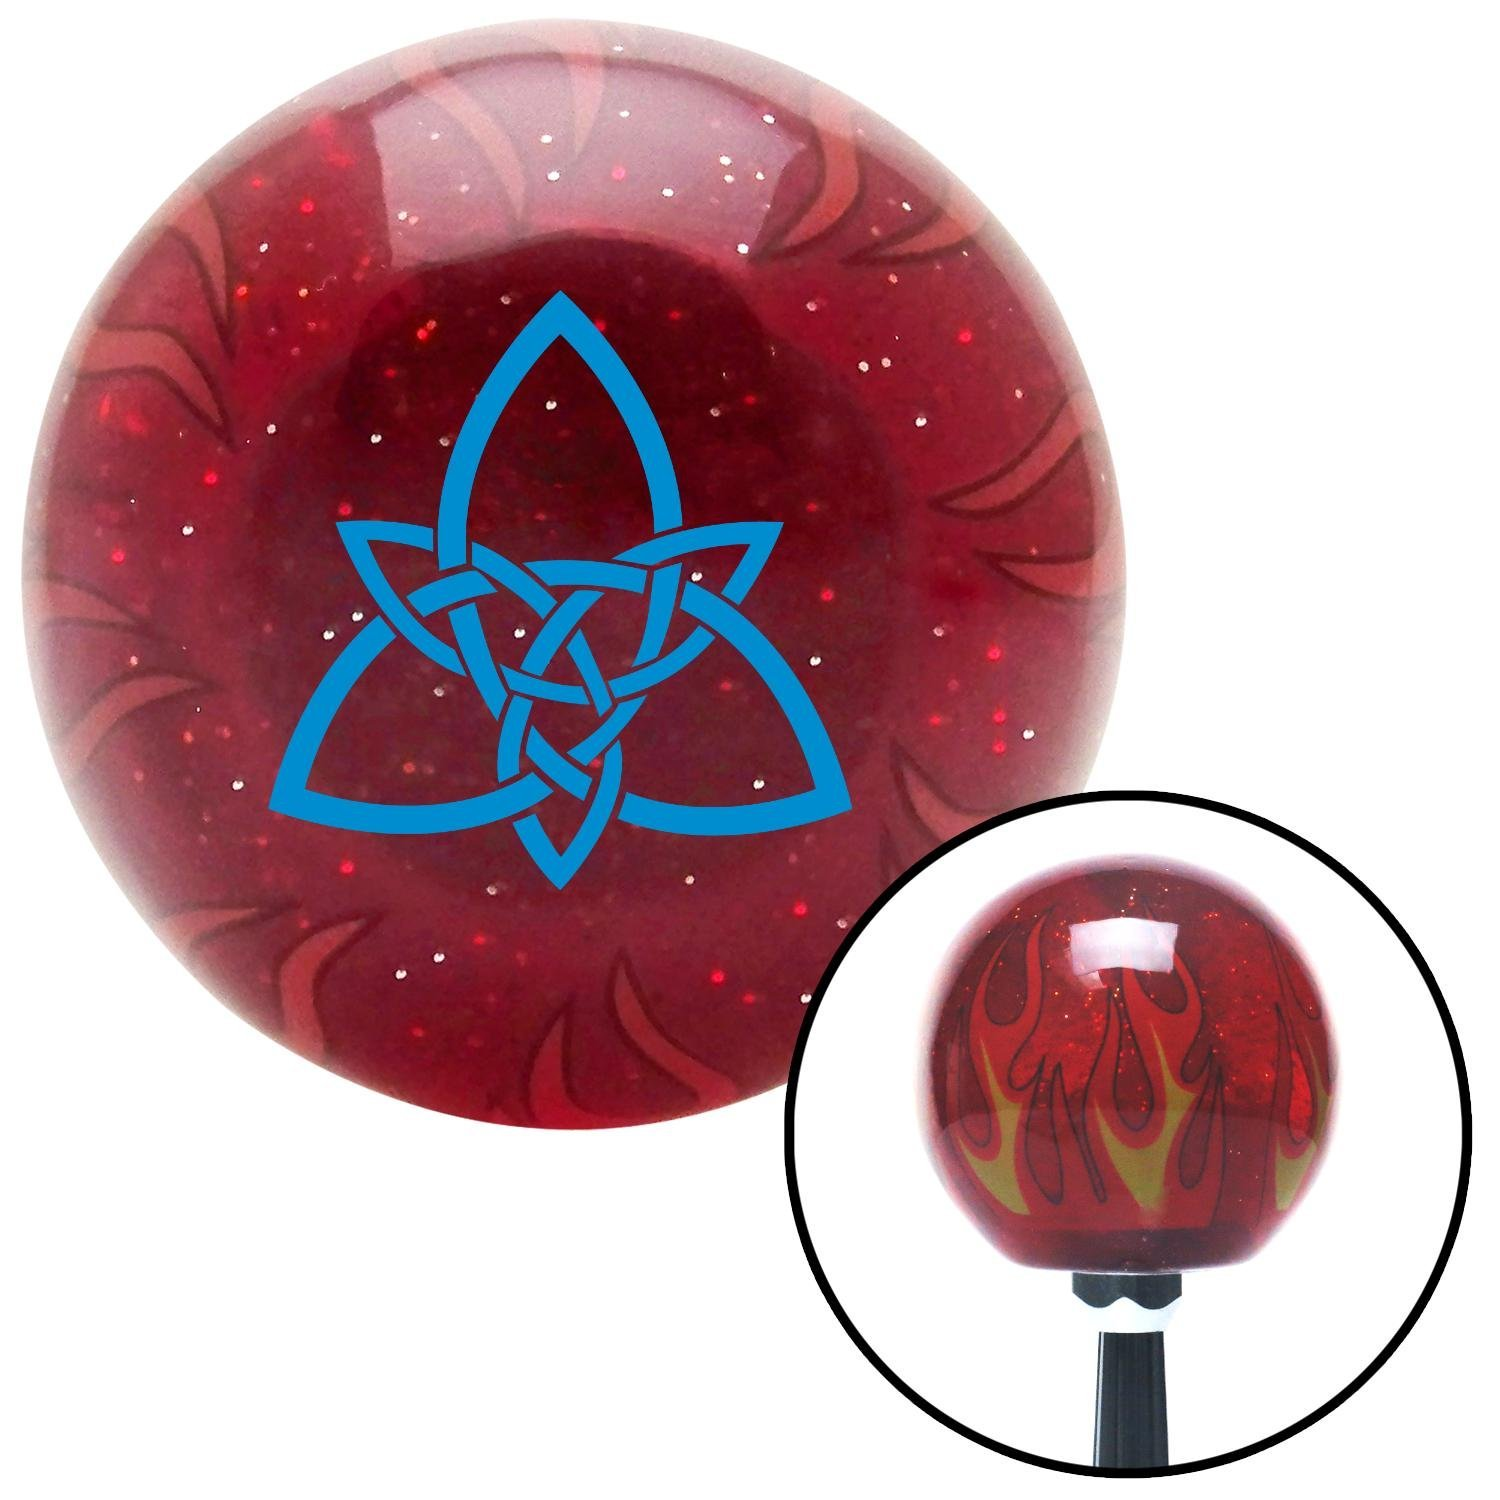 Blue Celtic Design #3 American Shifter 239598 Red Flame Metal Flake Shift Knob with M16 x 1.5 Insert